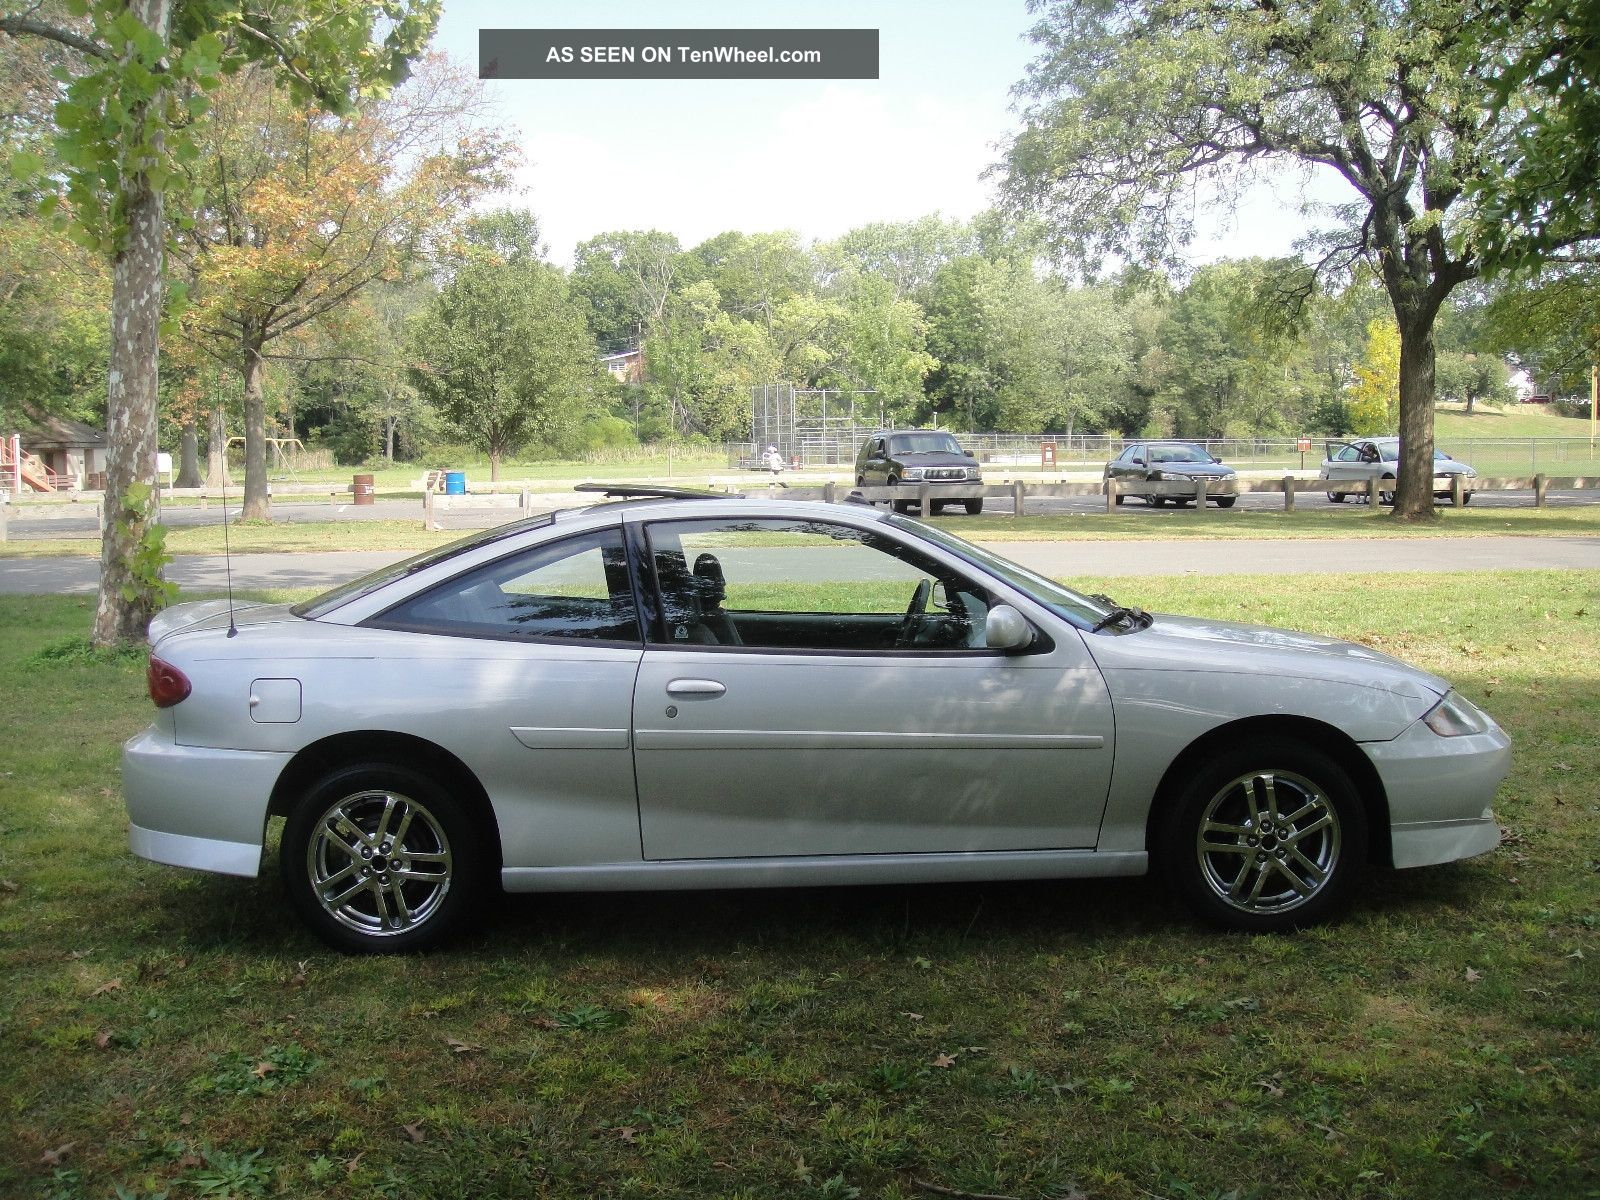 2005 chevrolet cavalier ls sport coupe fully loaded cavalier photo 4. Cars Review. Best American Auto & Cars Review